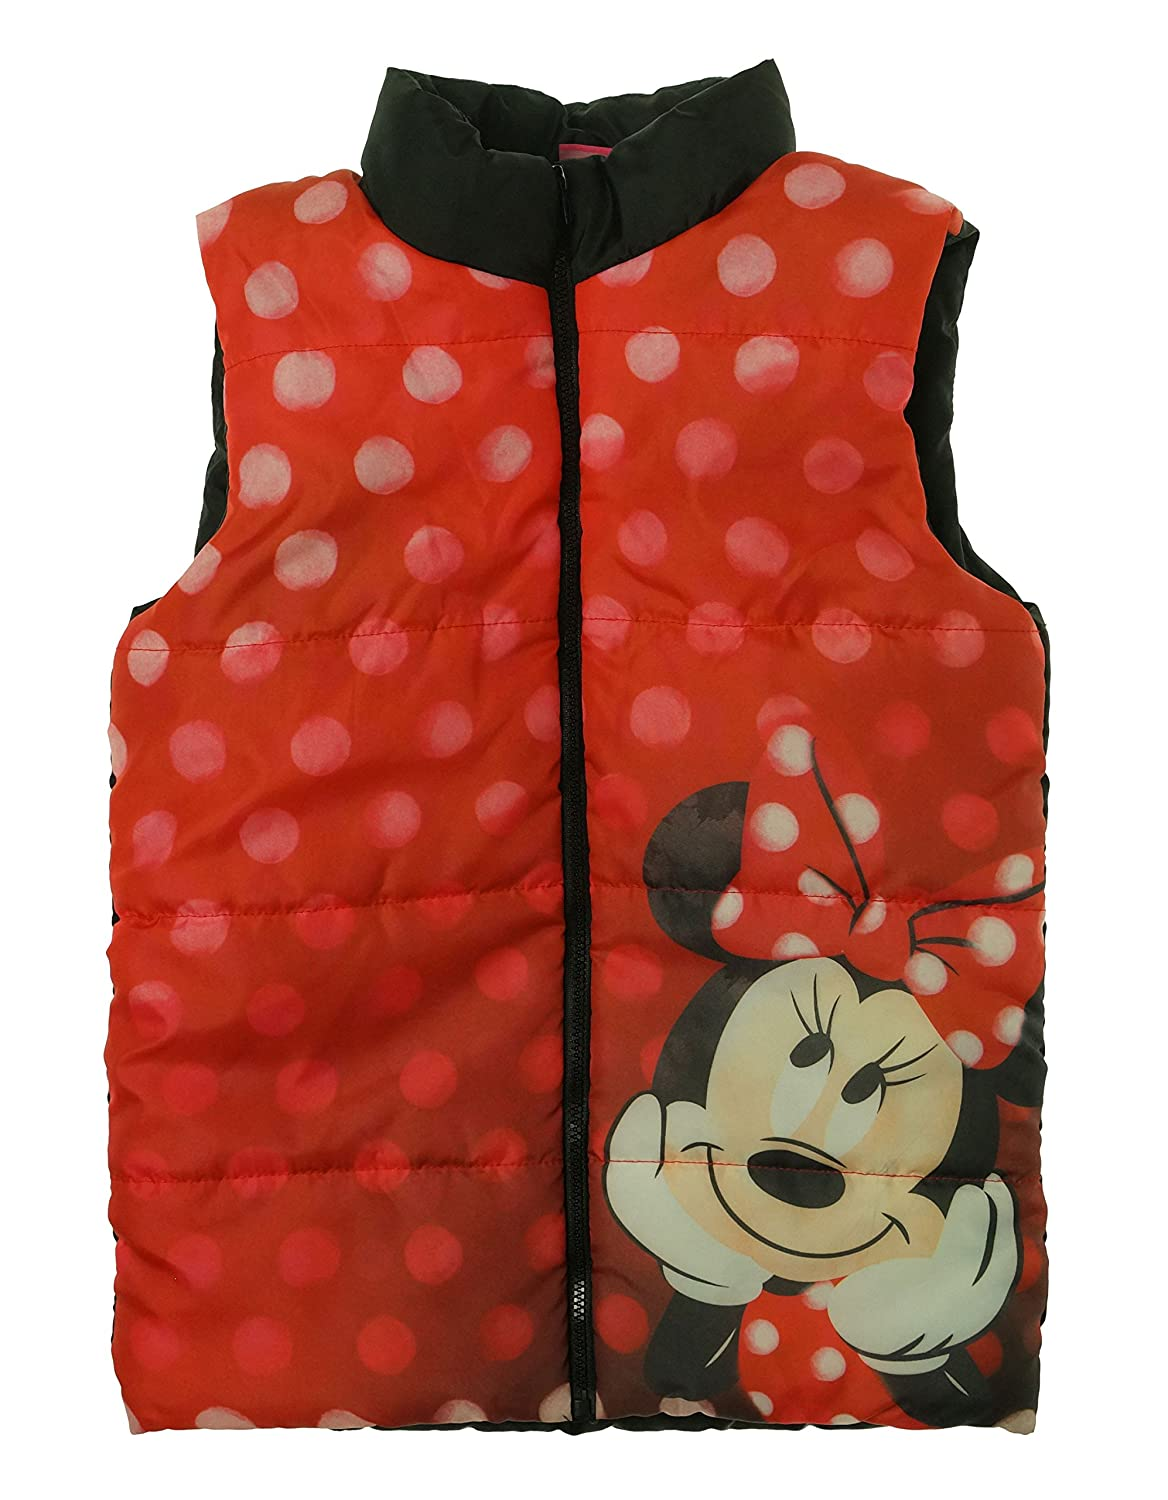 Disney Little Girls' Minnie Mouse Character Zip Up Puffer Vest Red Black